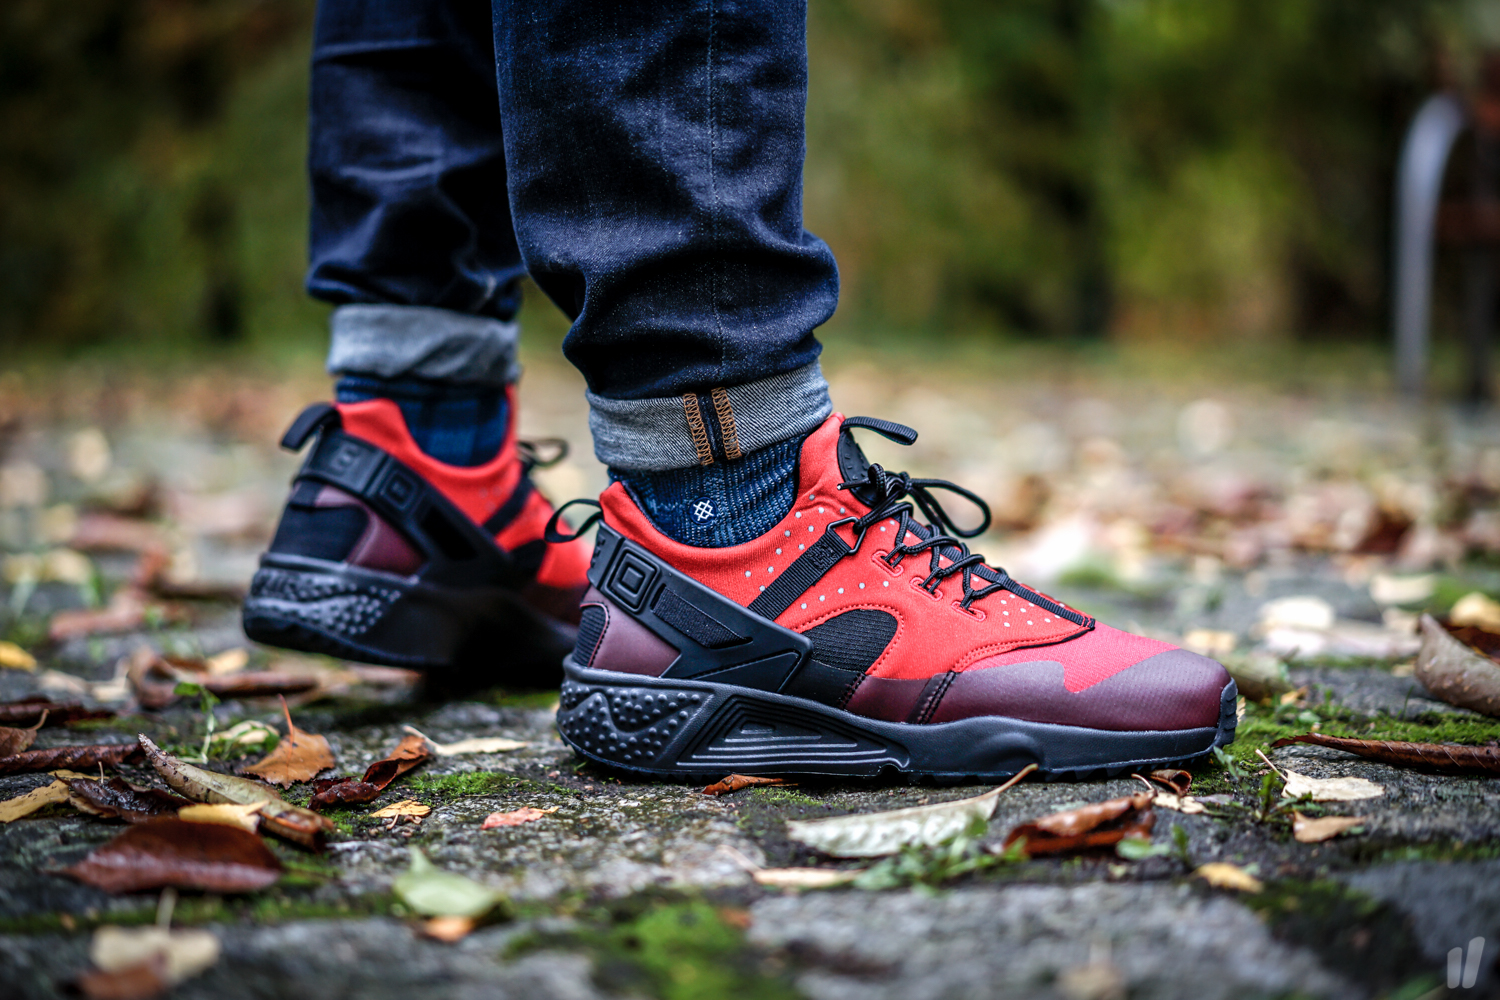 4b64acc0c71c Nike Air Huarache Utility Color  Gym Red Black Style  806807-600. Price    125.00